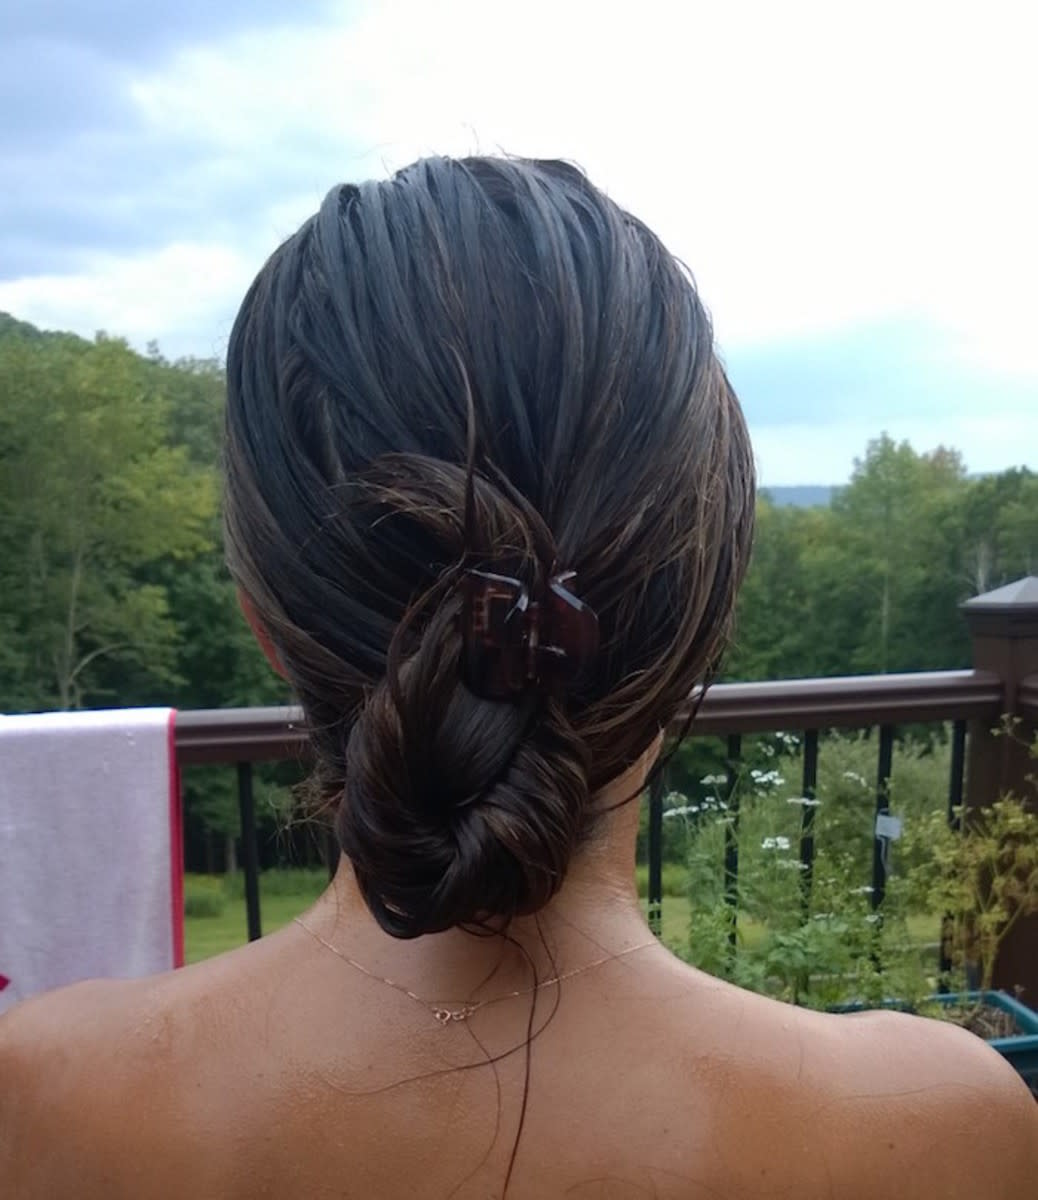 Summer Hair Recovery